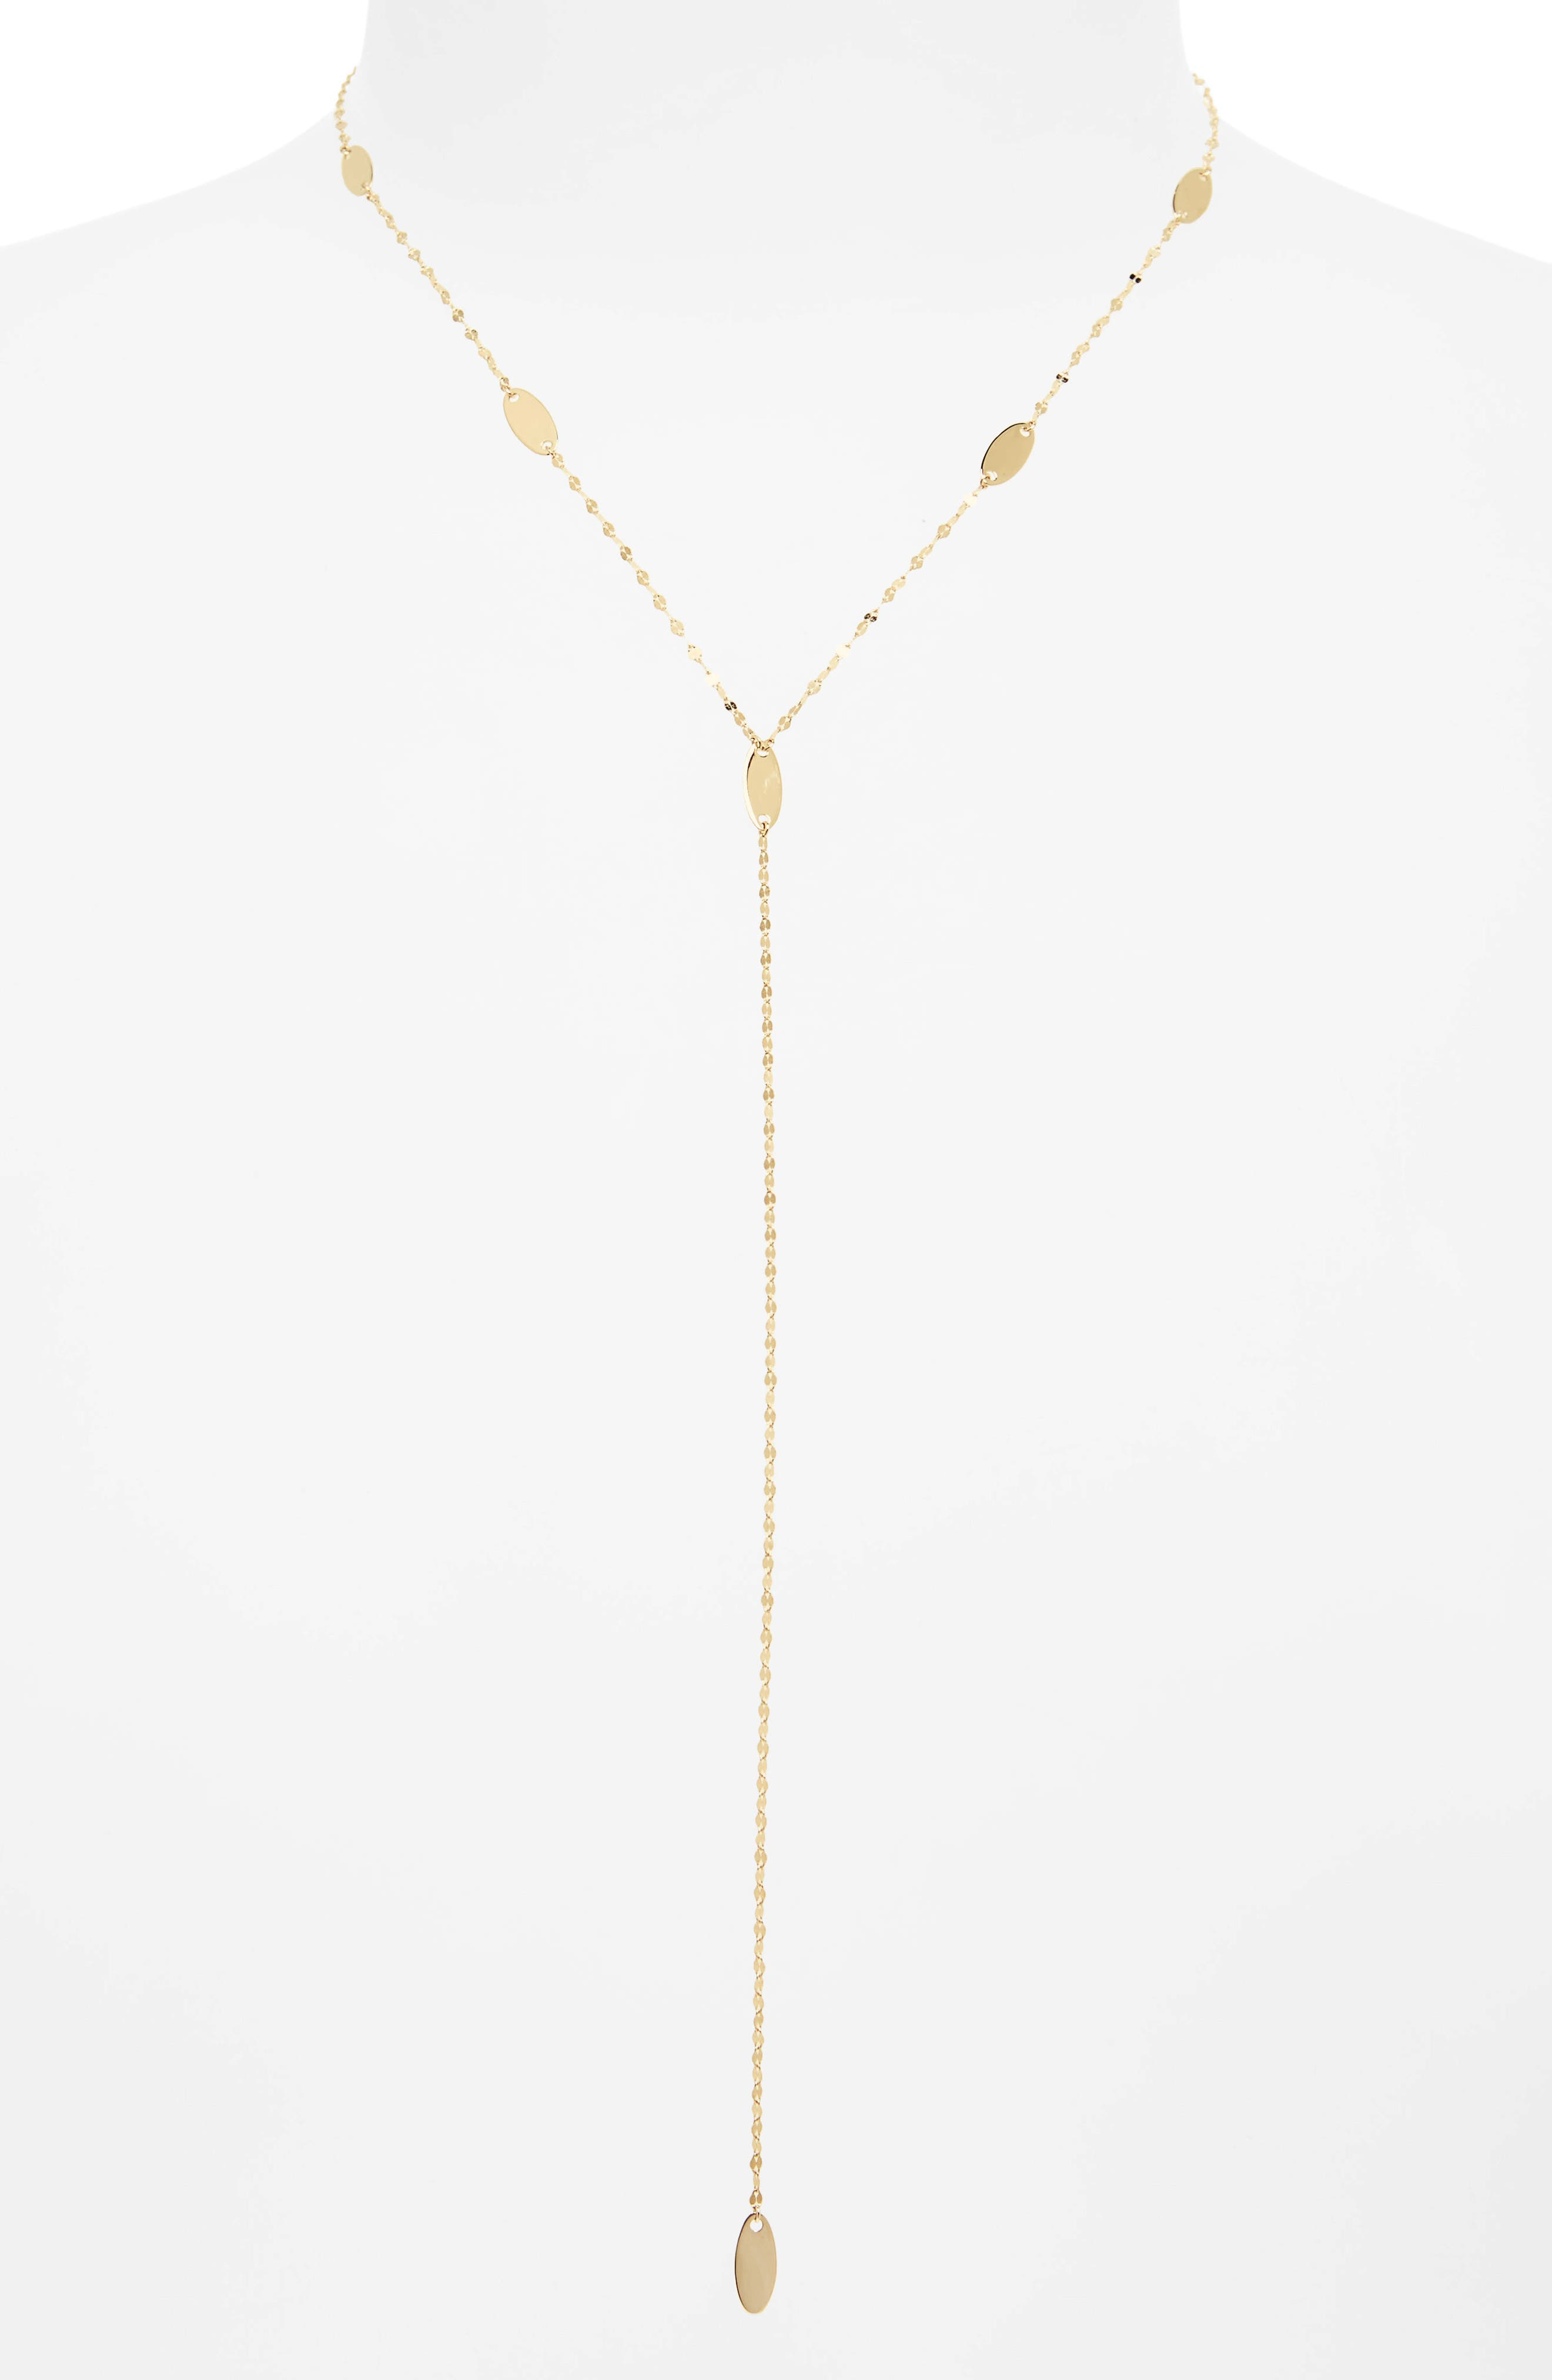 Alternate Image 1 Selected - Lana Jewelry Bond Long Ombré Marquis Lariat Necklace